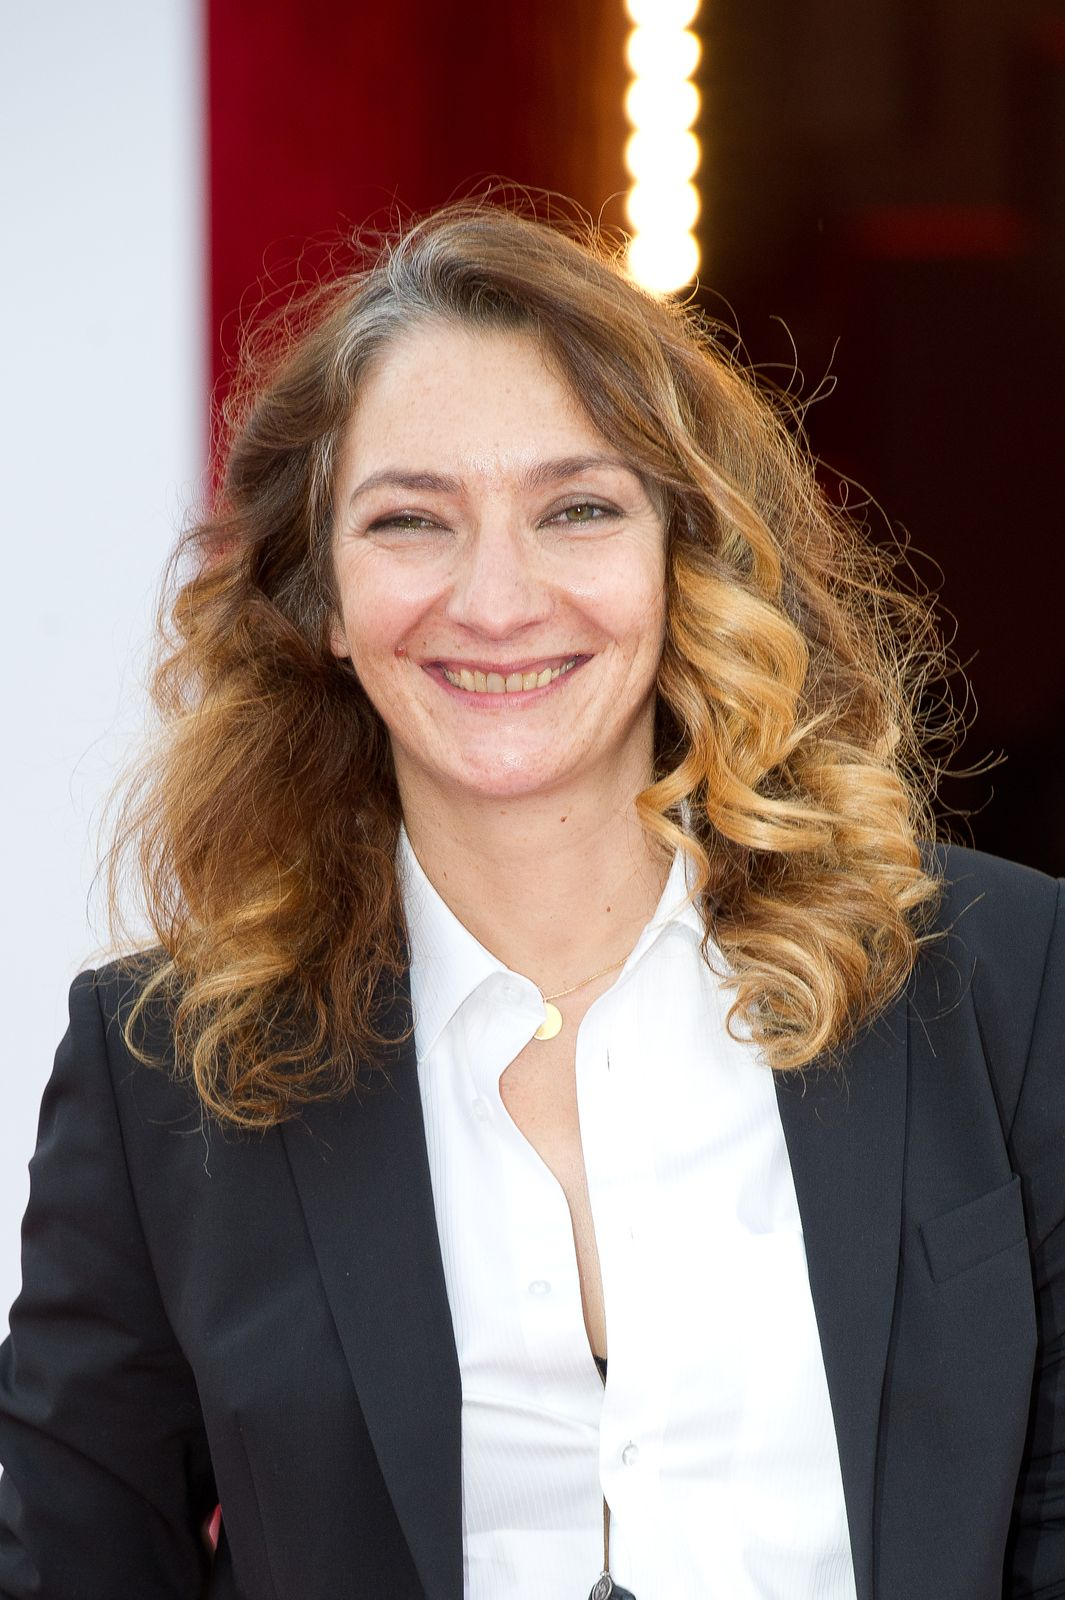 L'actrice Corinne Masiero | Photo : Getty Images